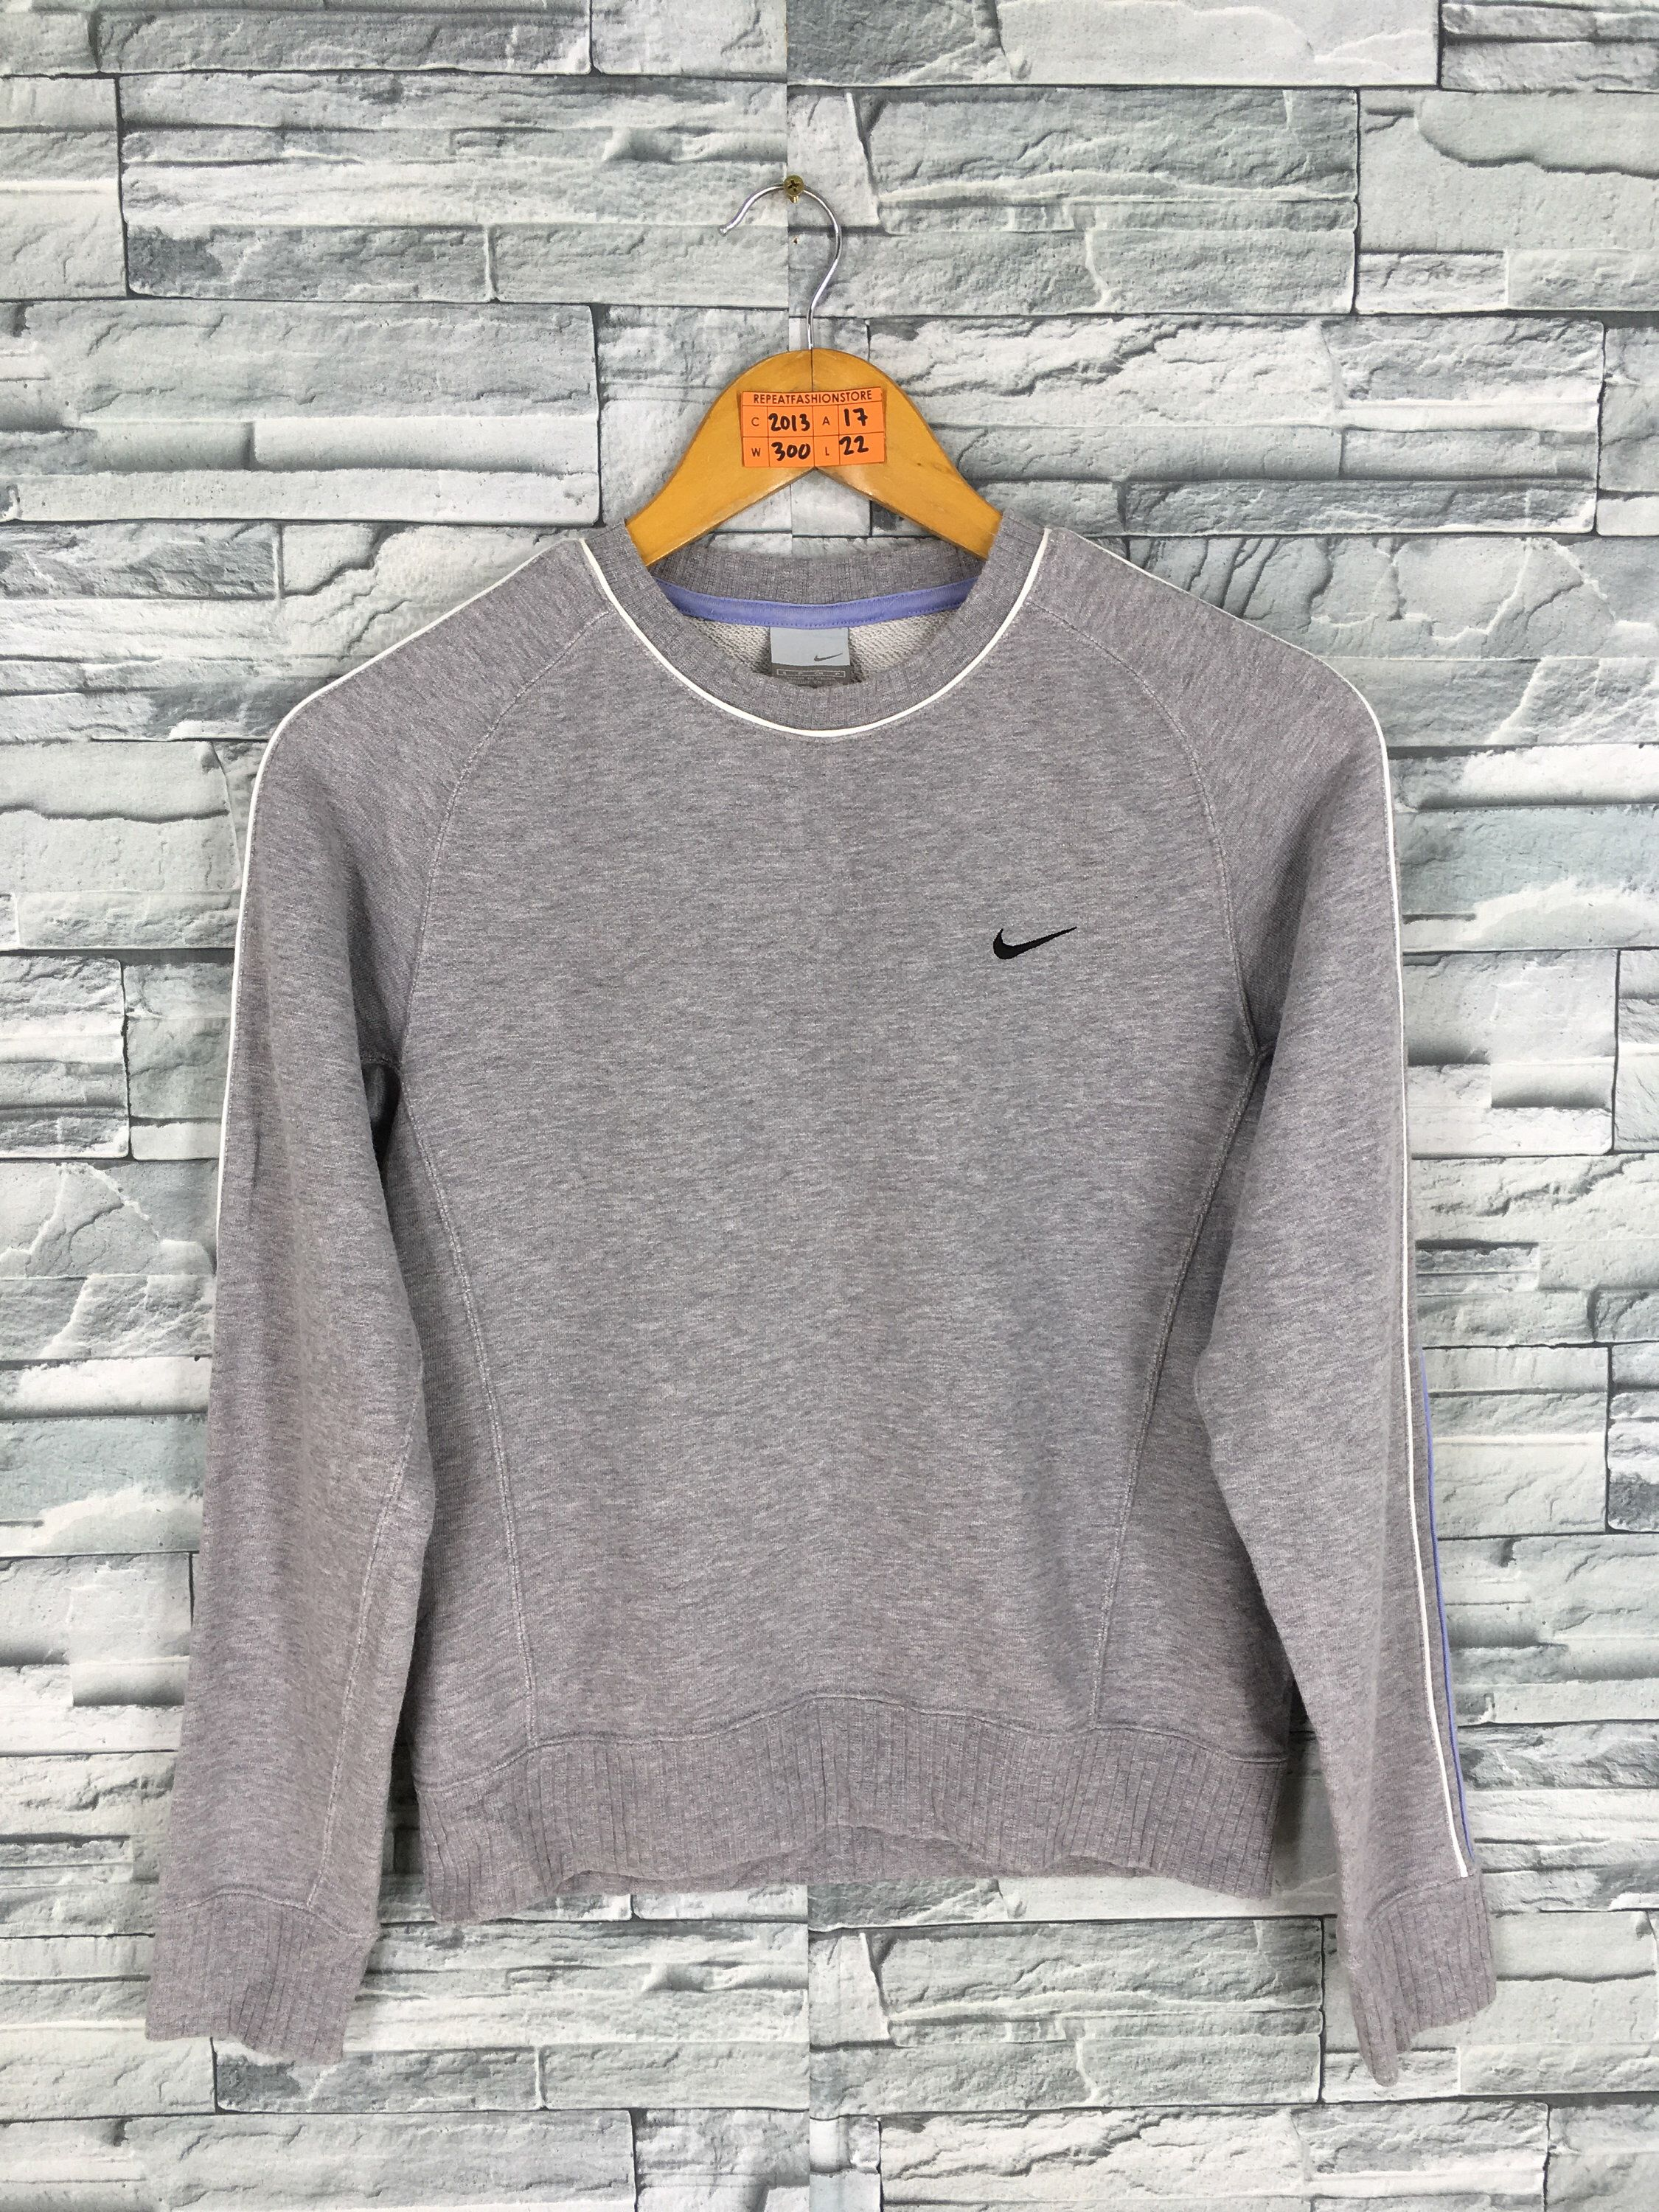 Excited To Share This Item From My Etsy Shop Vintage 90 S Nike Sweatshirt Small Ladies Nike Swoosh Sportswear Nike Sweatshirts Sweatshirts Sweatshirts Women [ 3000 x 2250 Pixel ]